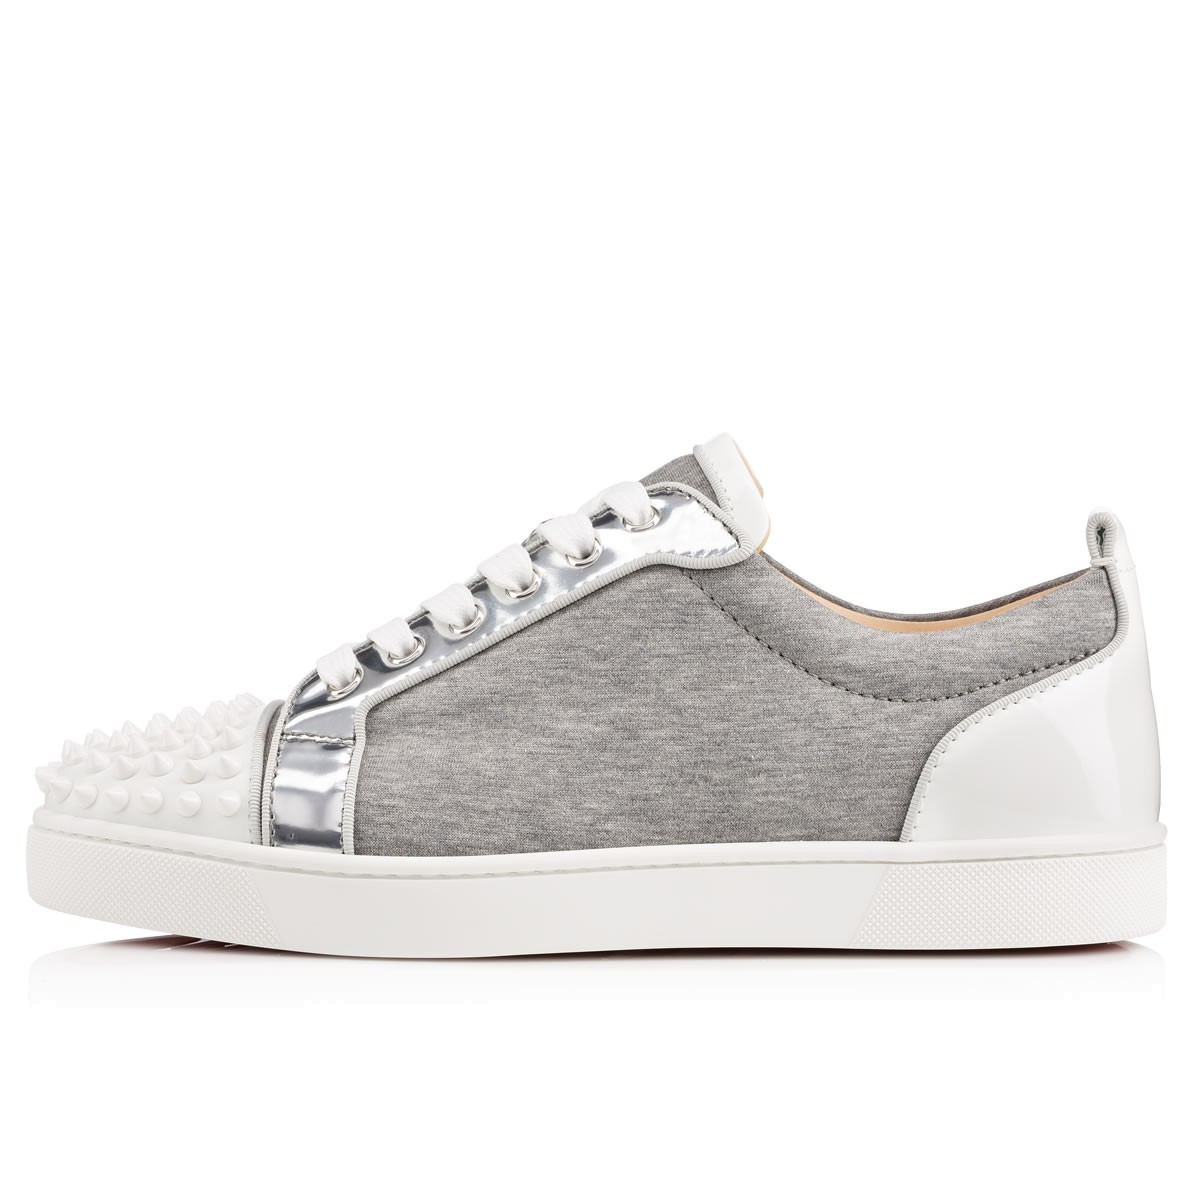 separation shoes 9bcd4 69abe christian louboutin louis junior spike sneakers, christian ...